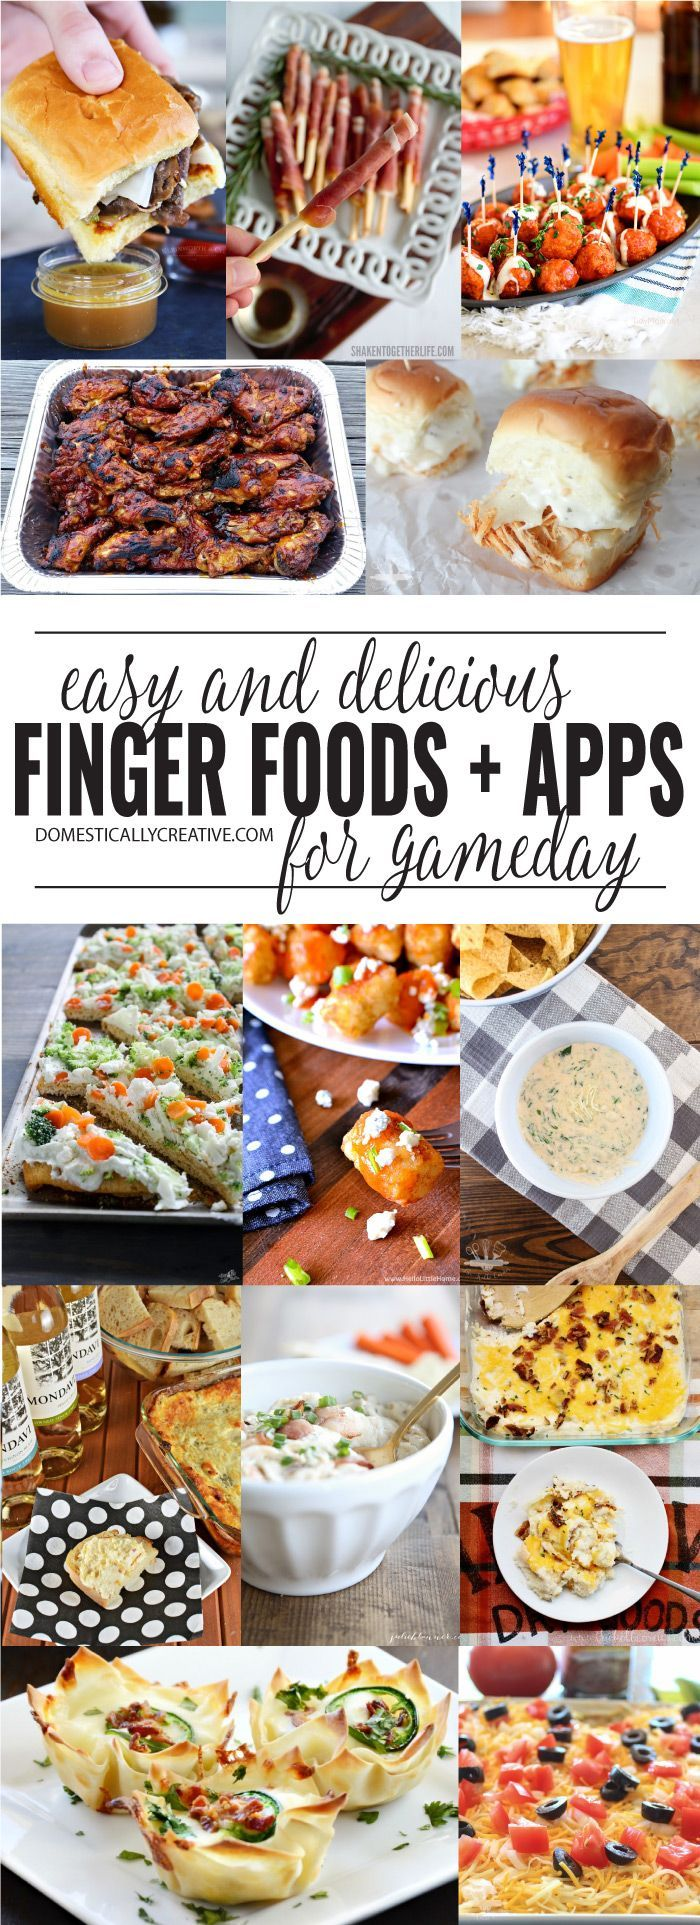 Easy Finger Foods and Appetizers for Game Day! Healthy